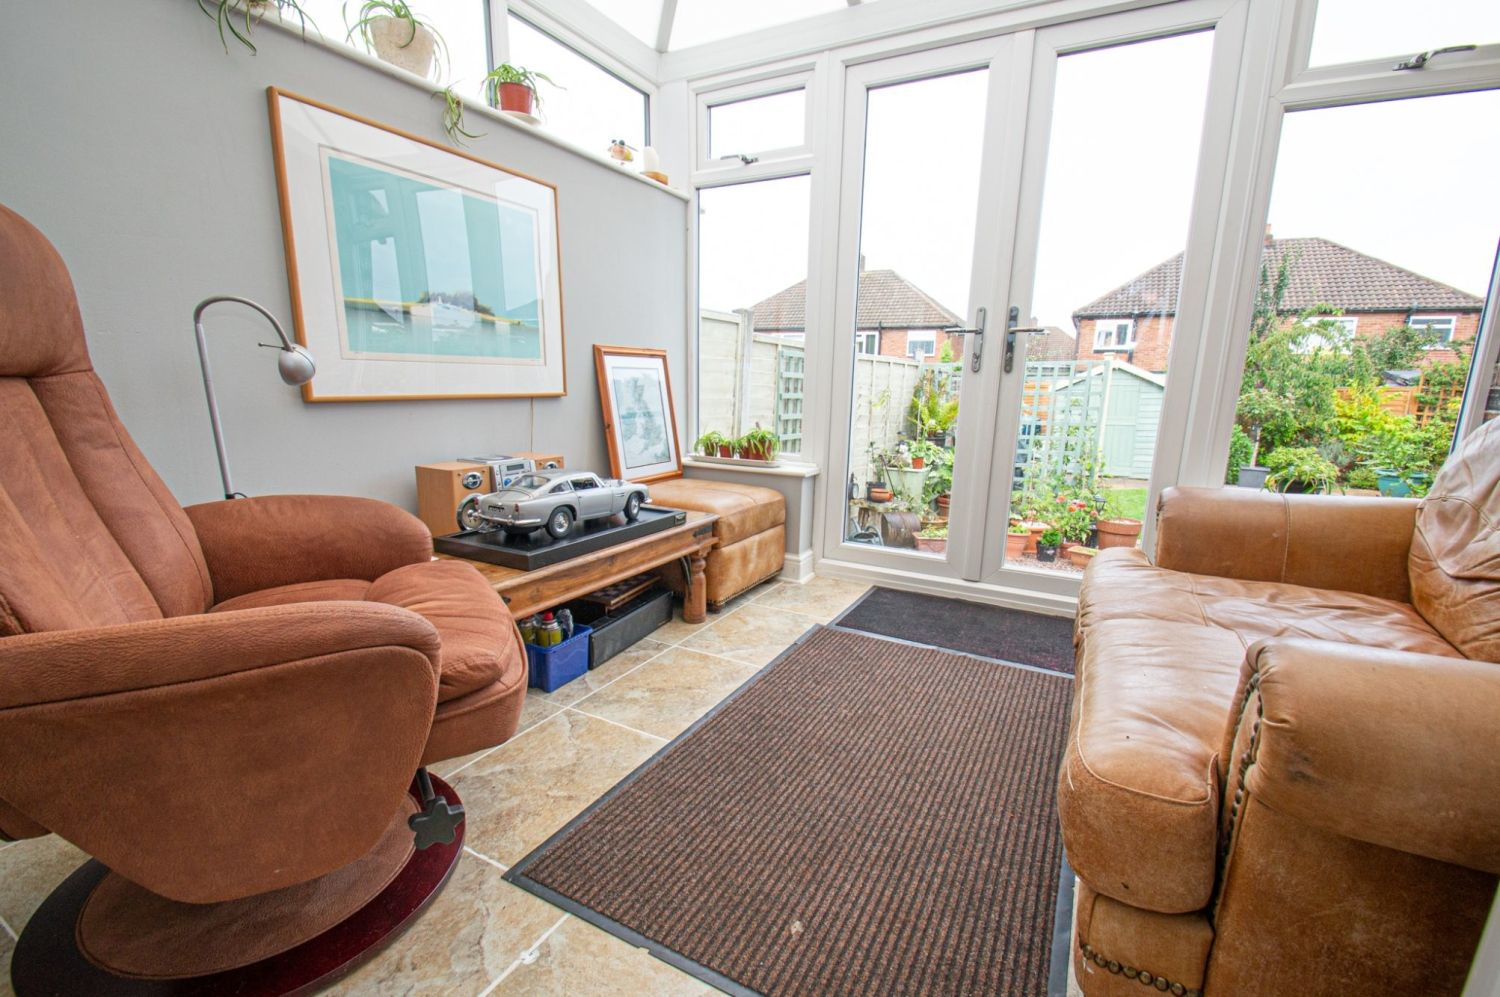 4 bed semi-detached for sale in Wheatcroft Close, Halesowen  - Property Image 8